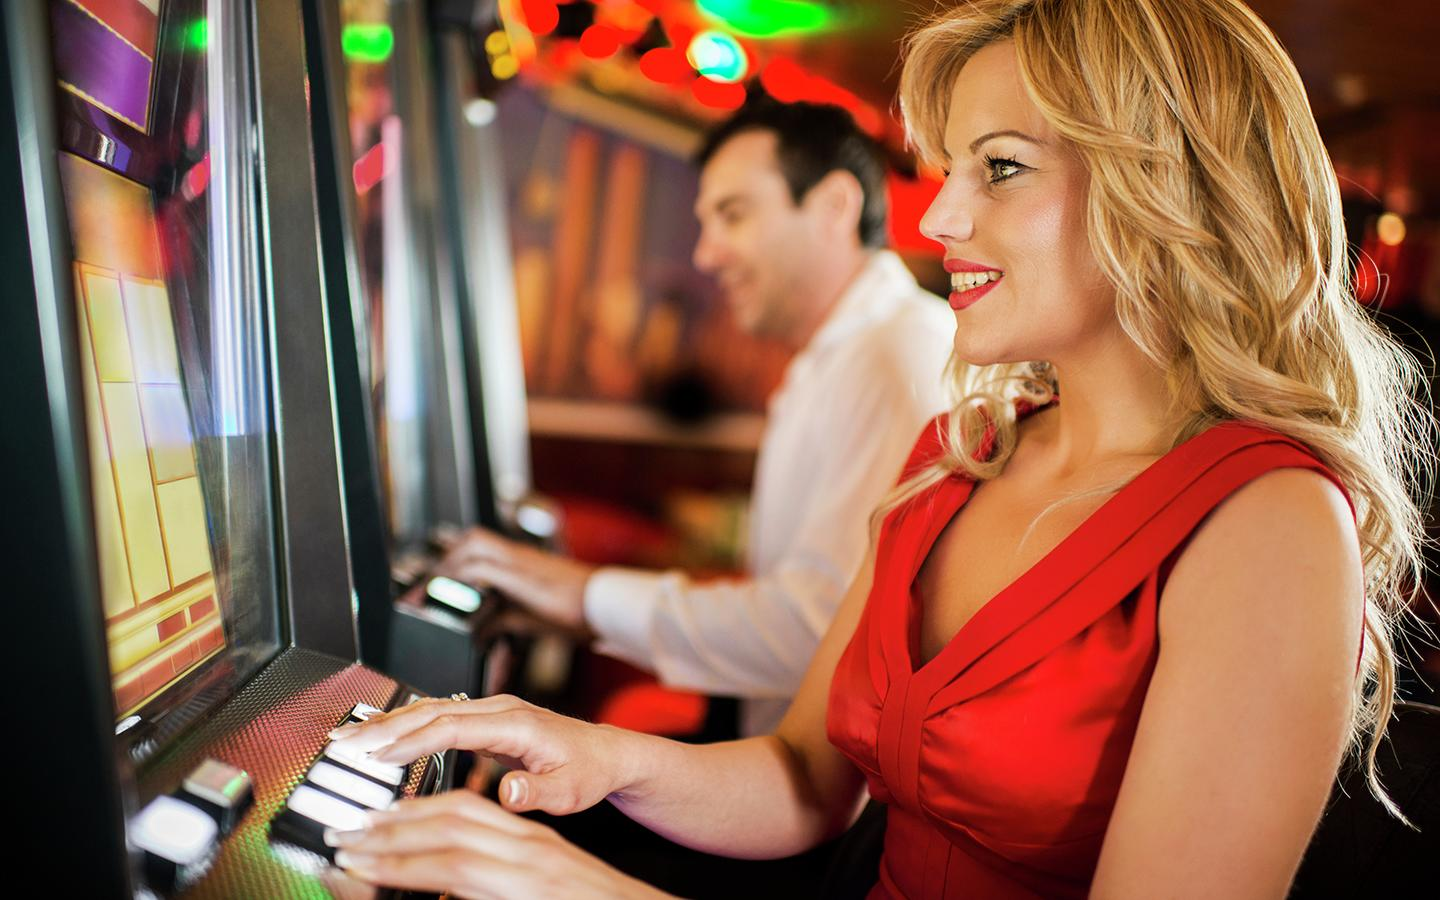 Why is it good to gamble using an app?